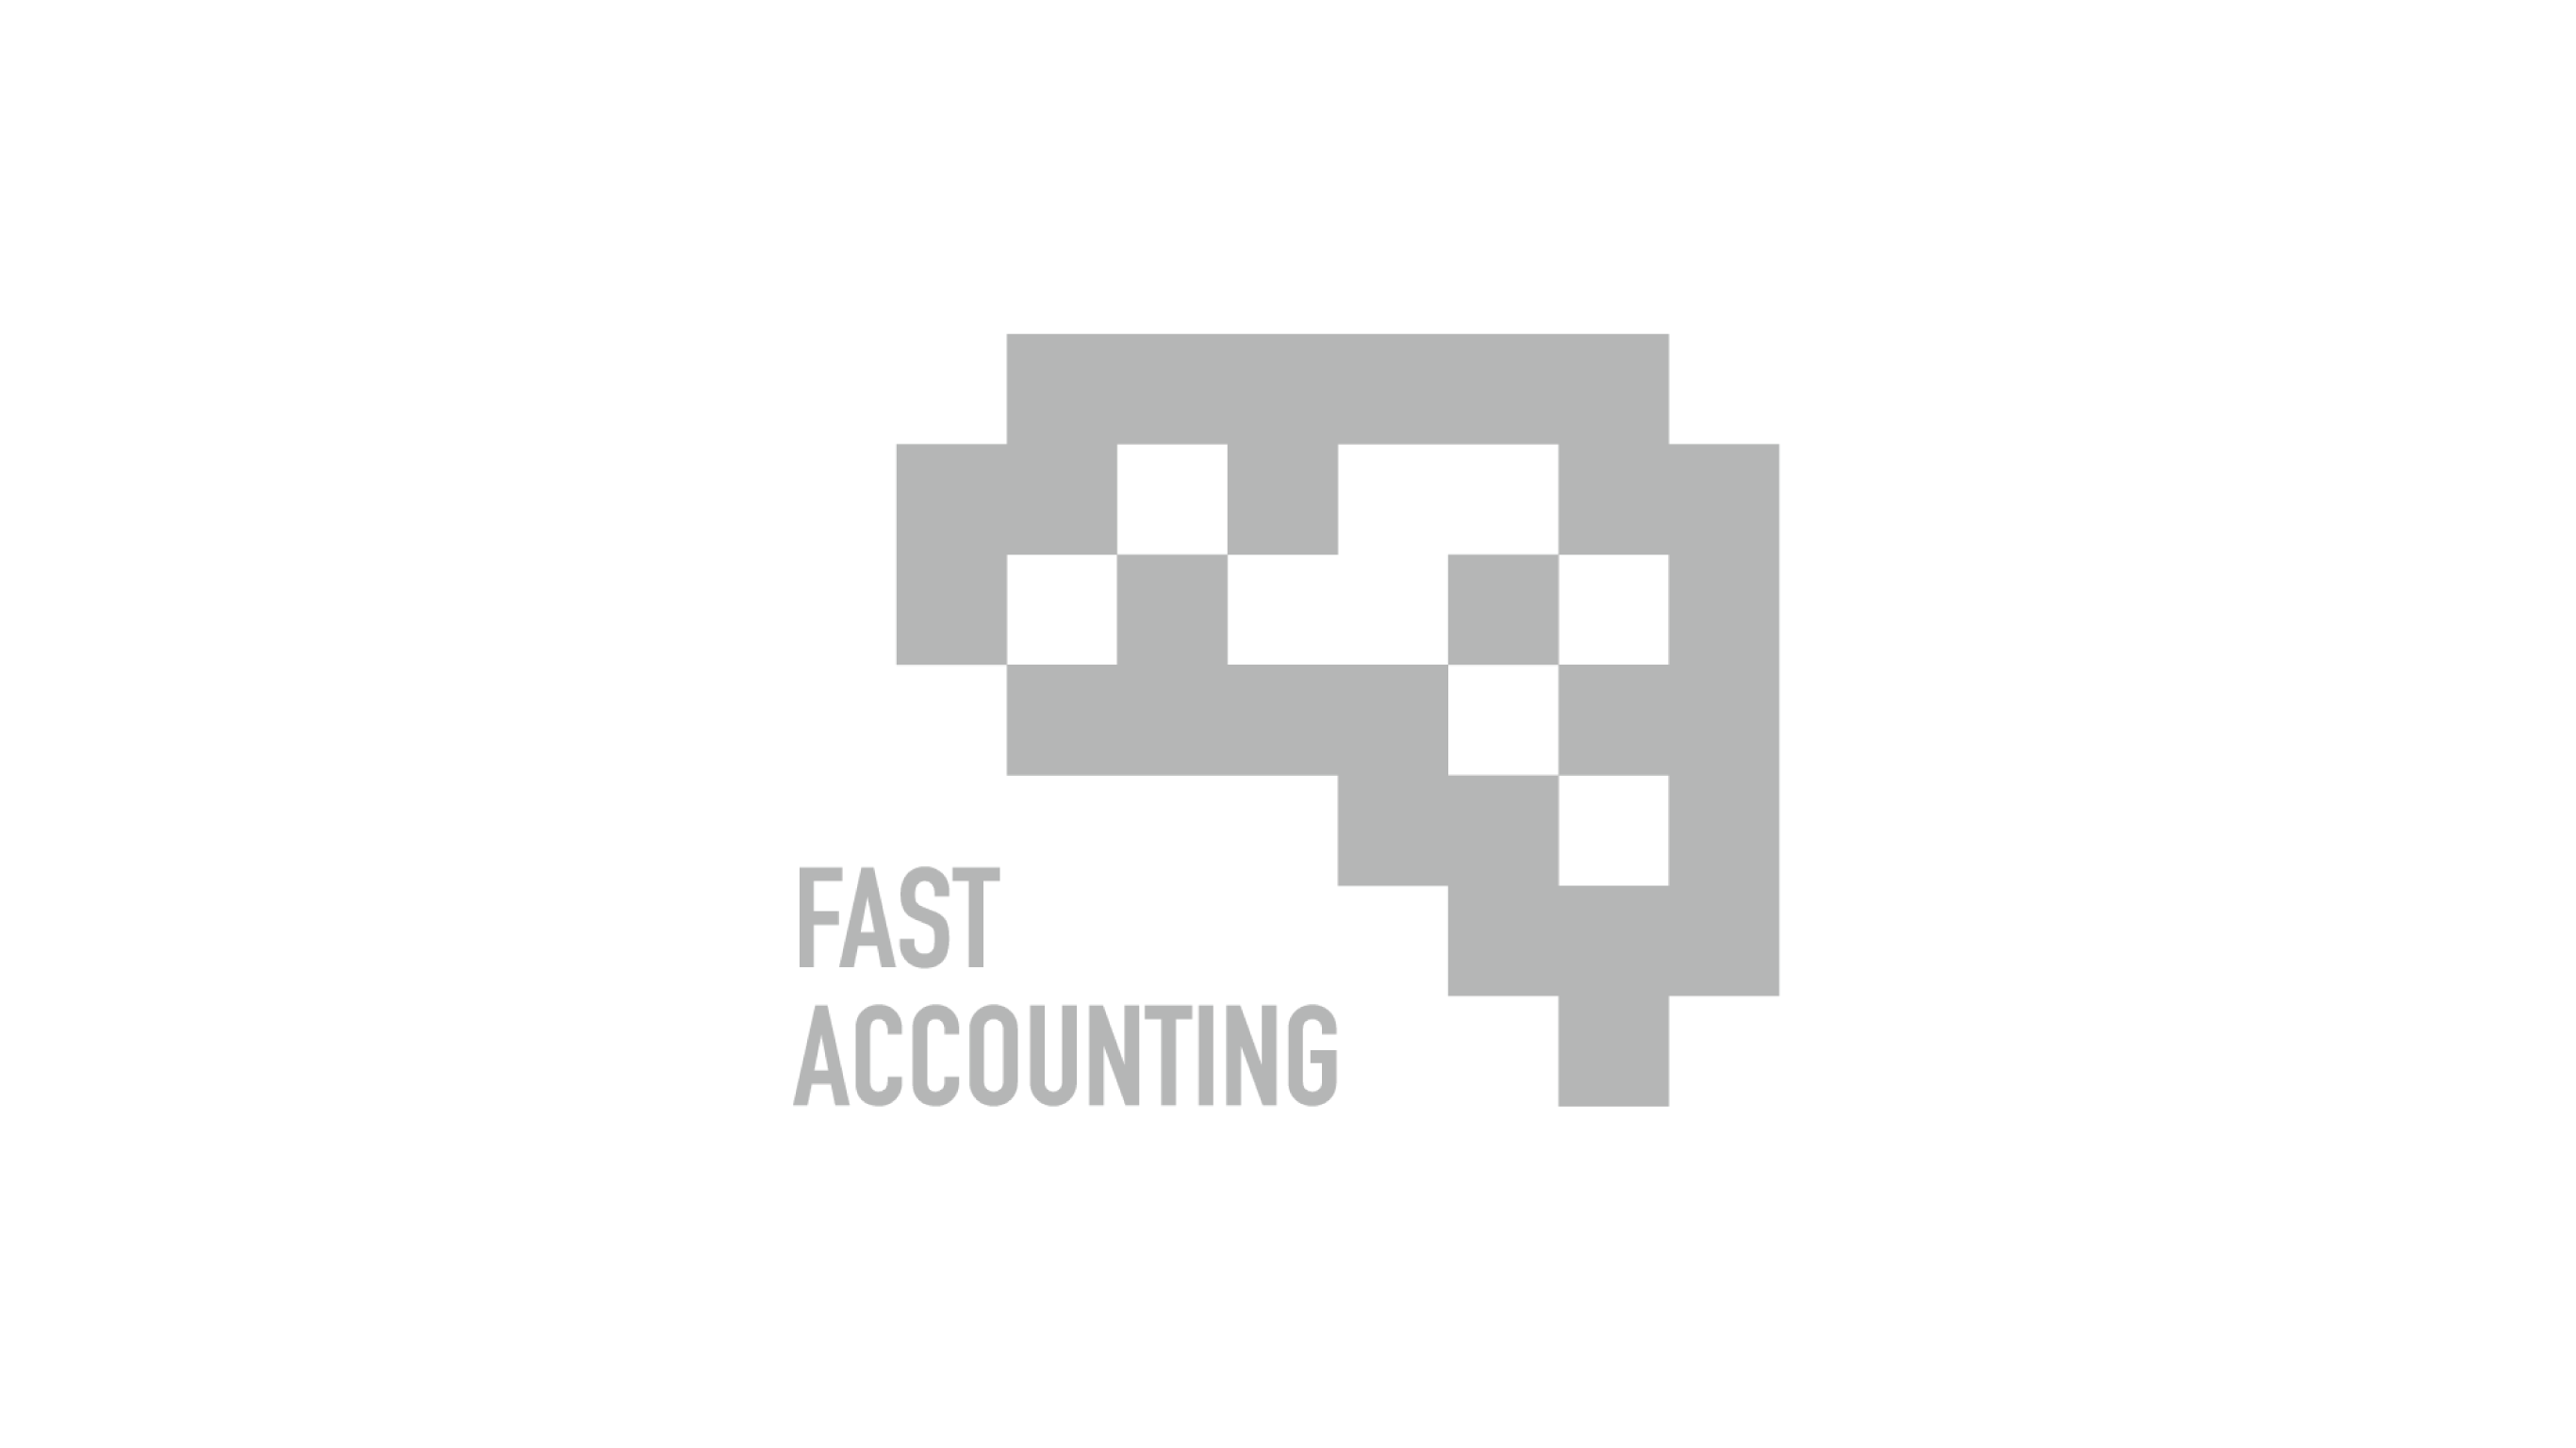 fastaccounting_logo